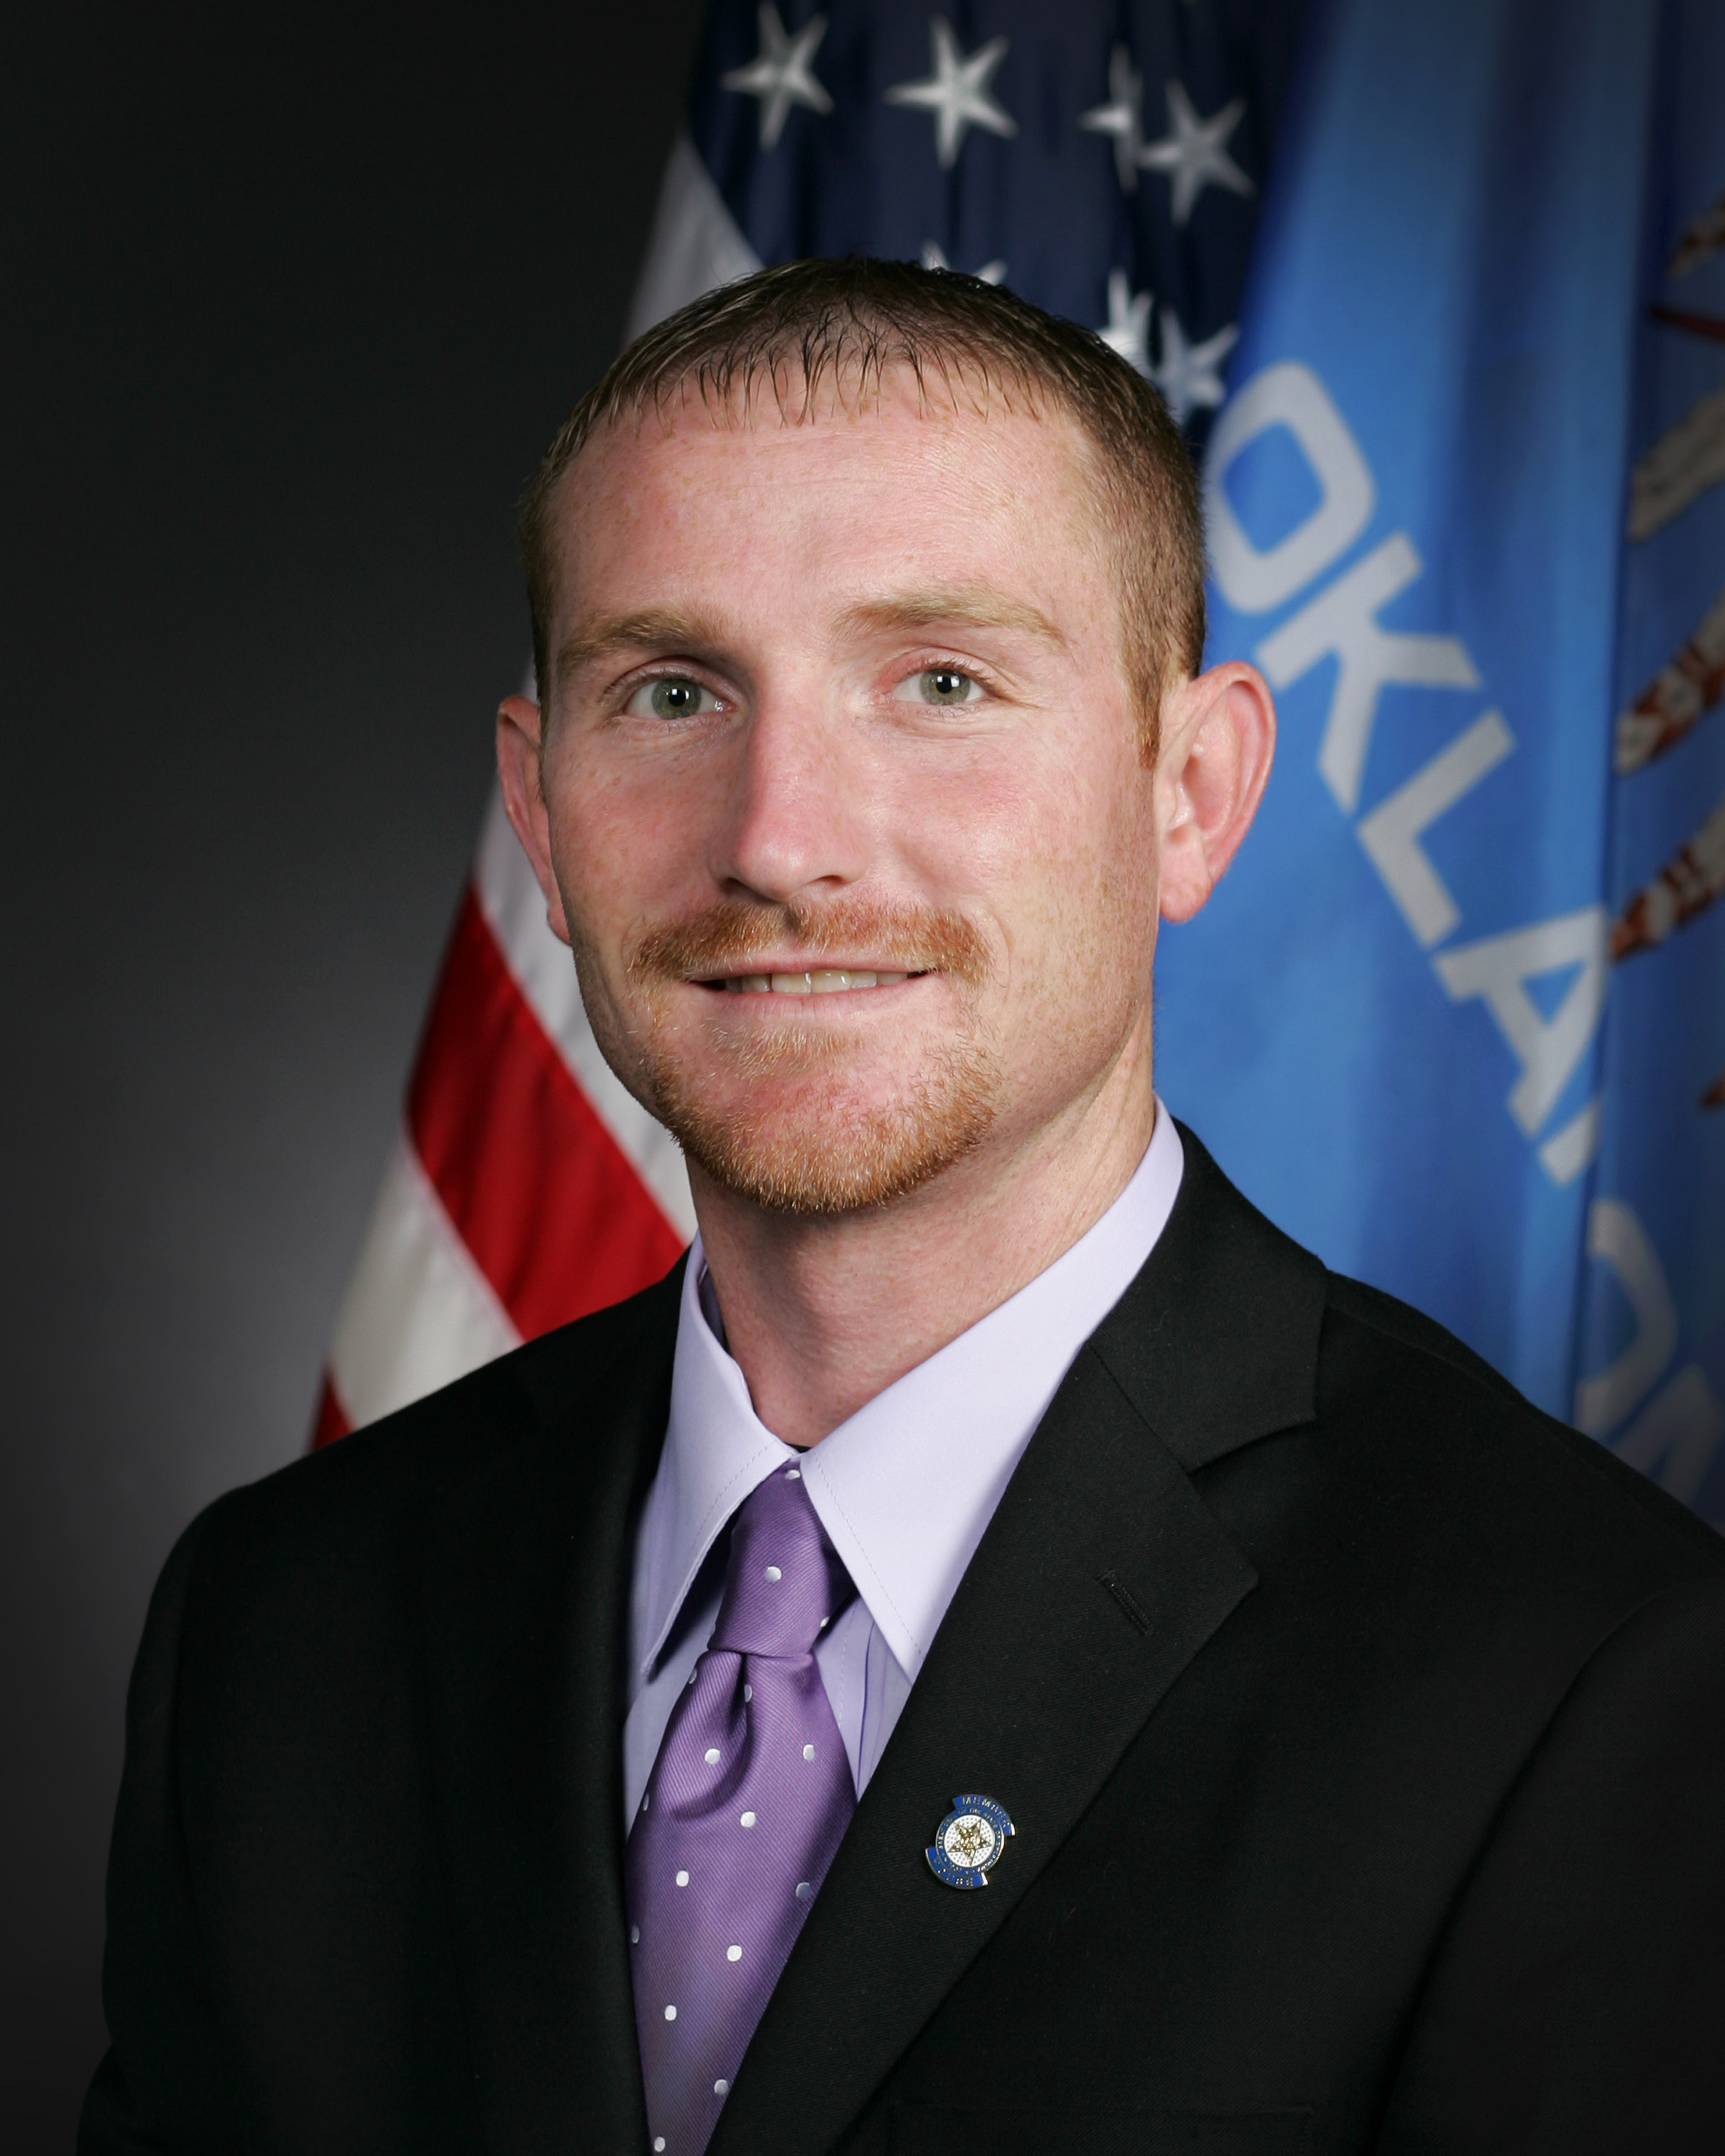 representative dustin roberts - oklahoma house of representatives